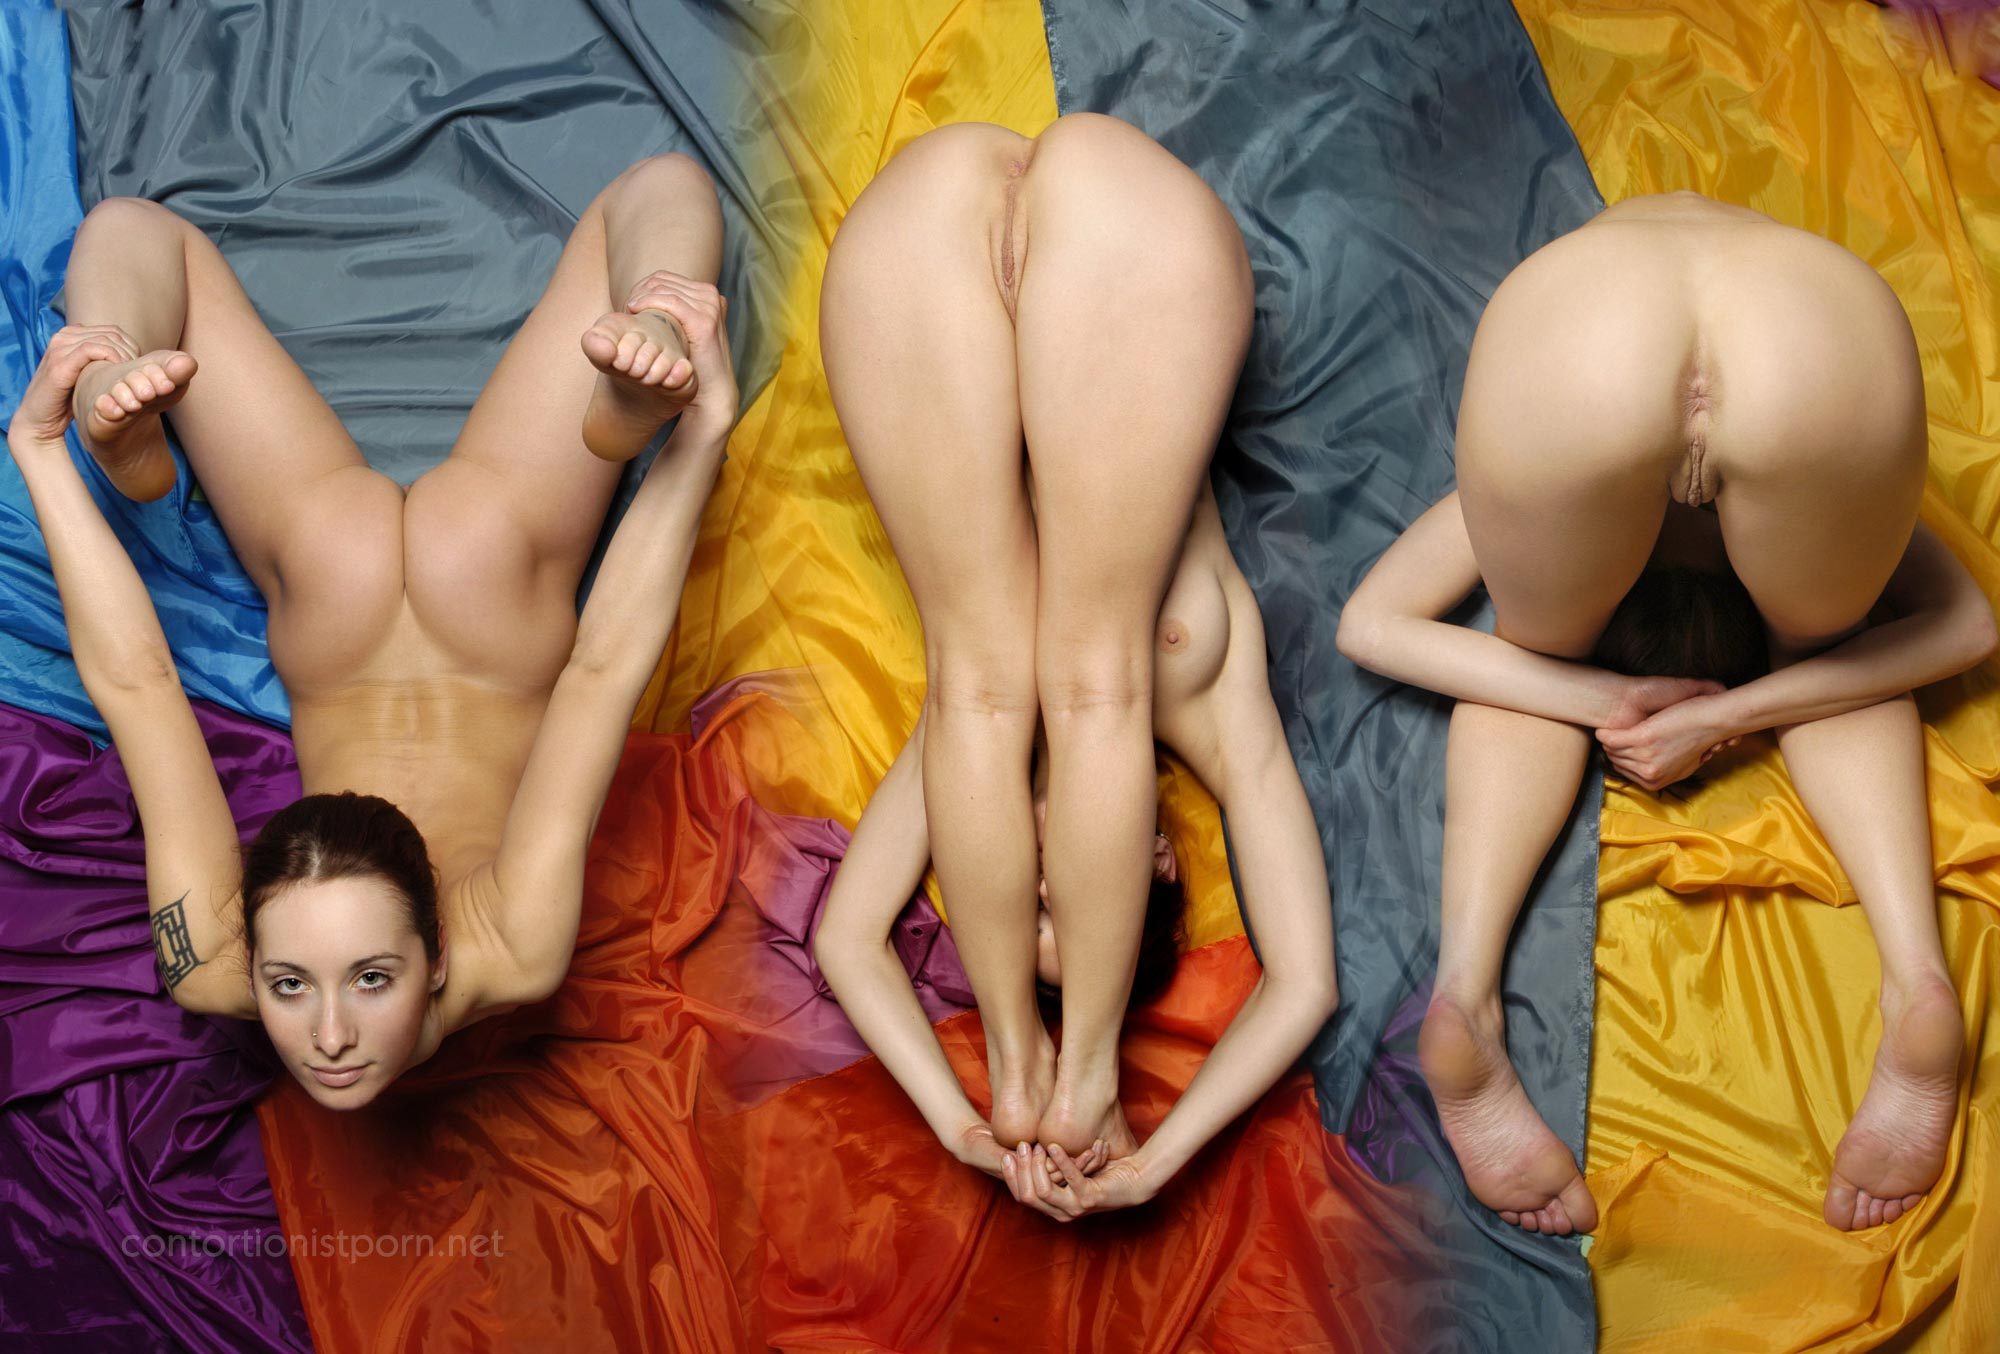 Contortionist porn photos